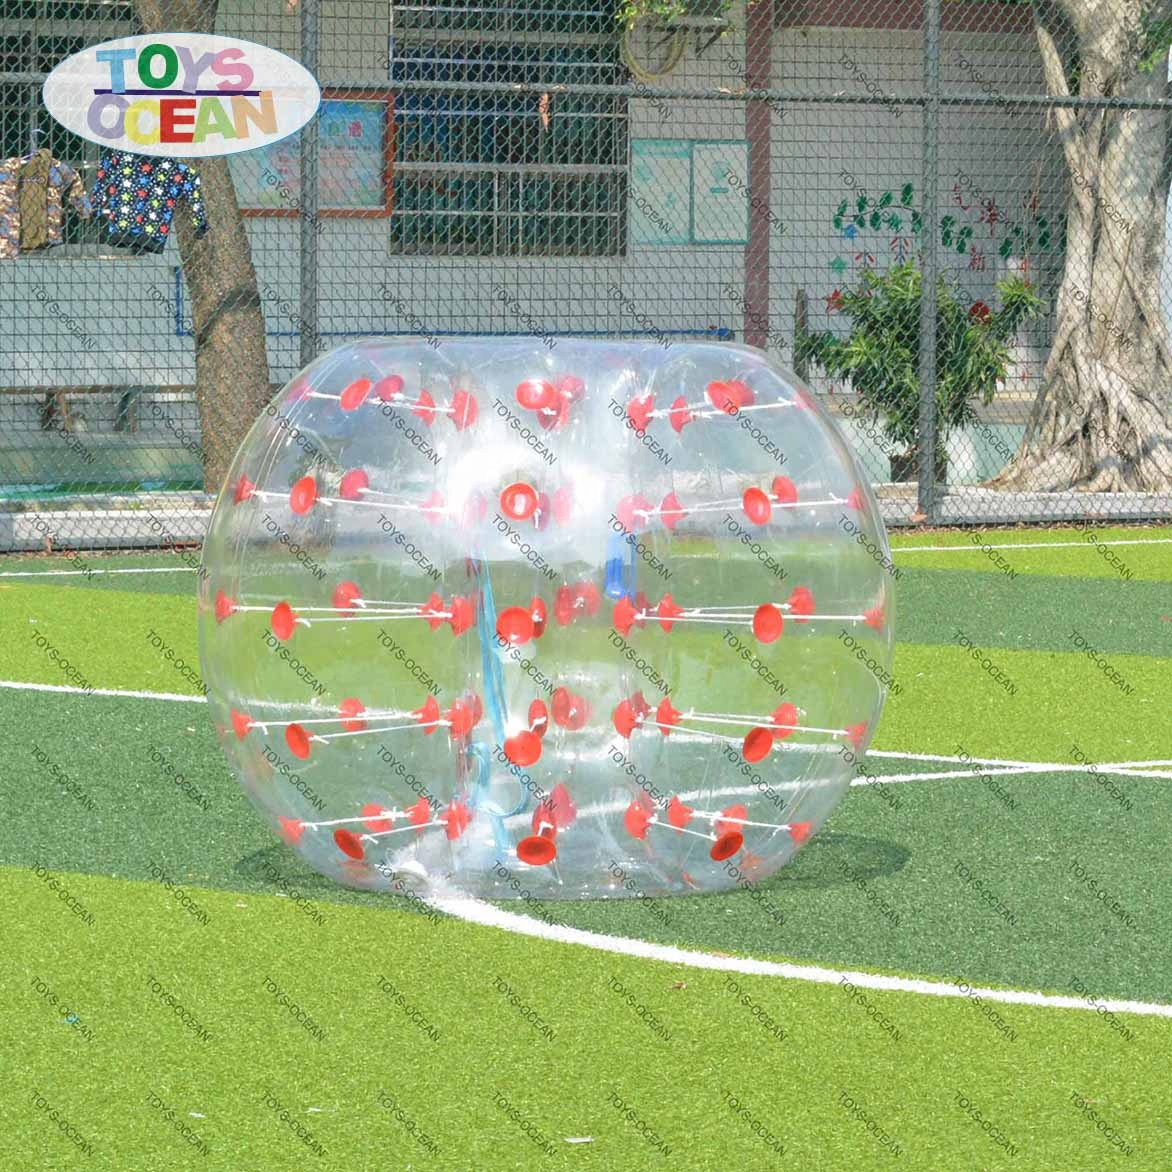 bumper inflatable transparent bubble zorb ball toys for play on grass